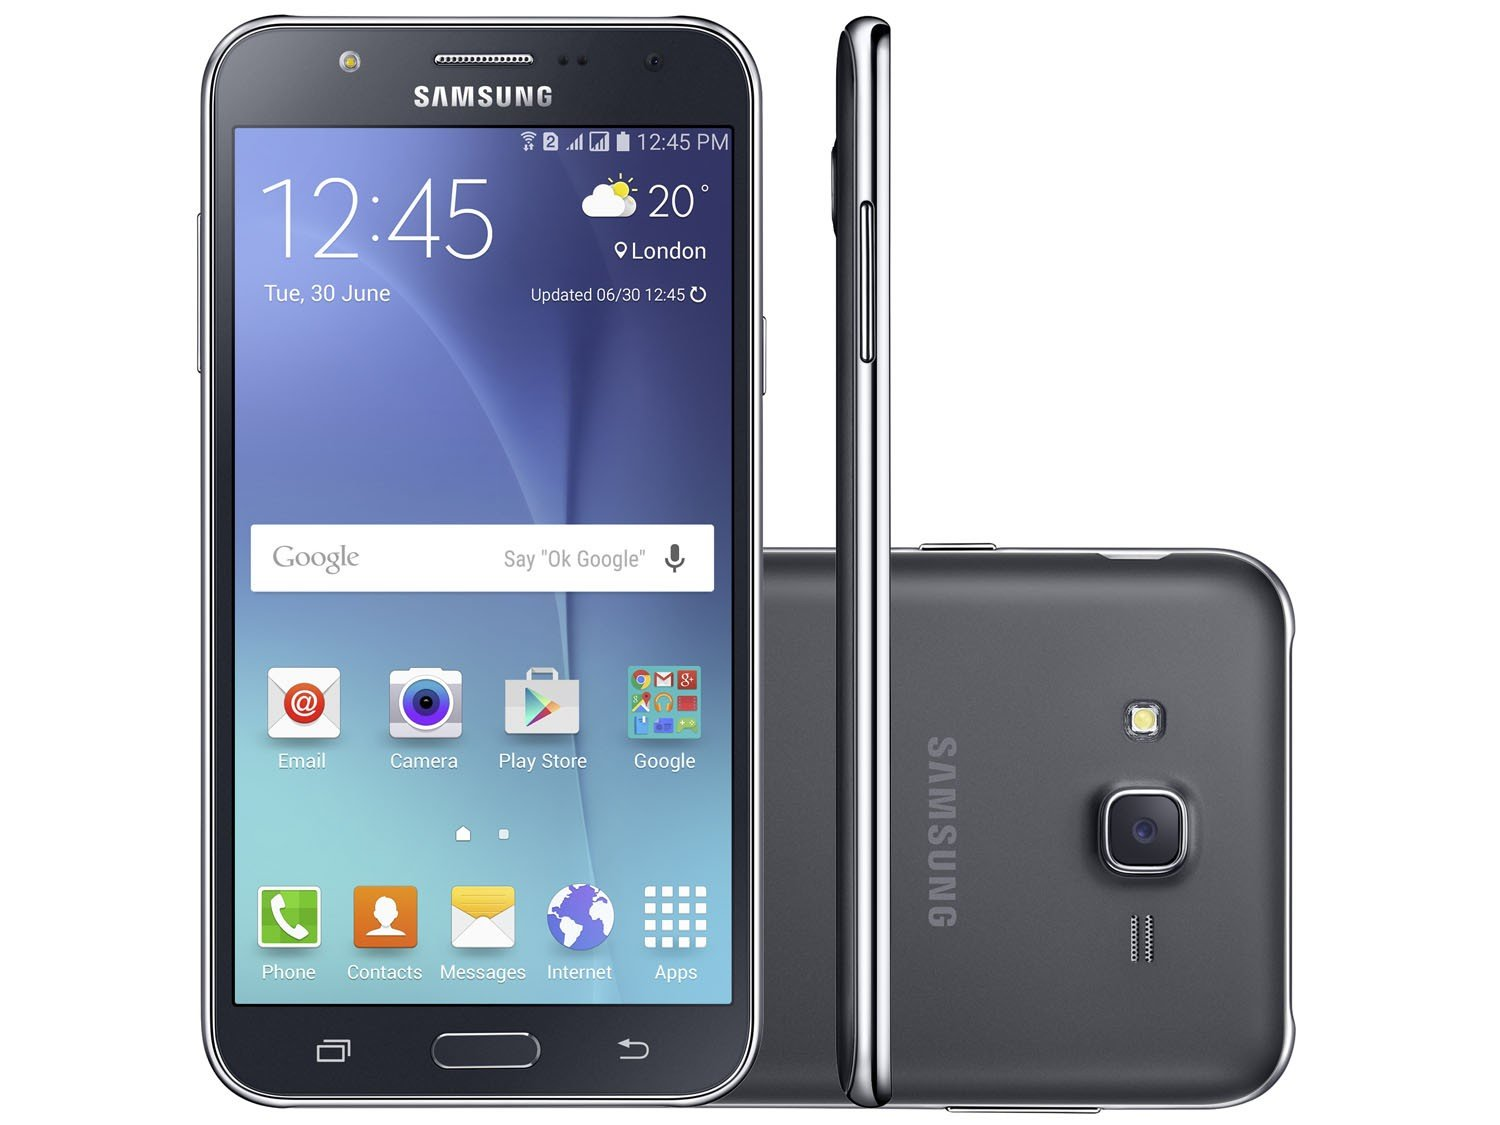 a samsung j7 new launch samsung galaxy j7 2016 black unlocked dual sim 5 5inch 1 6ghz 16gb 4g ebay